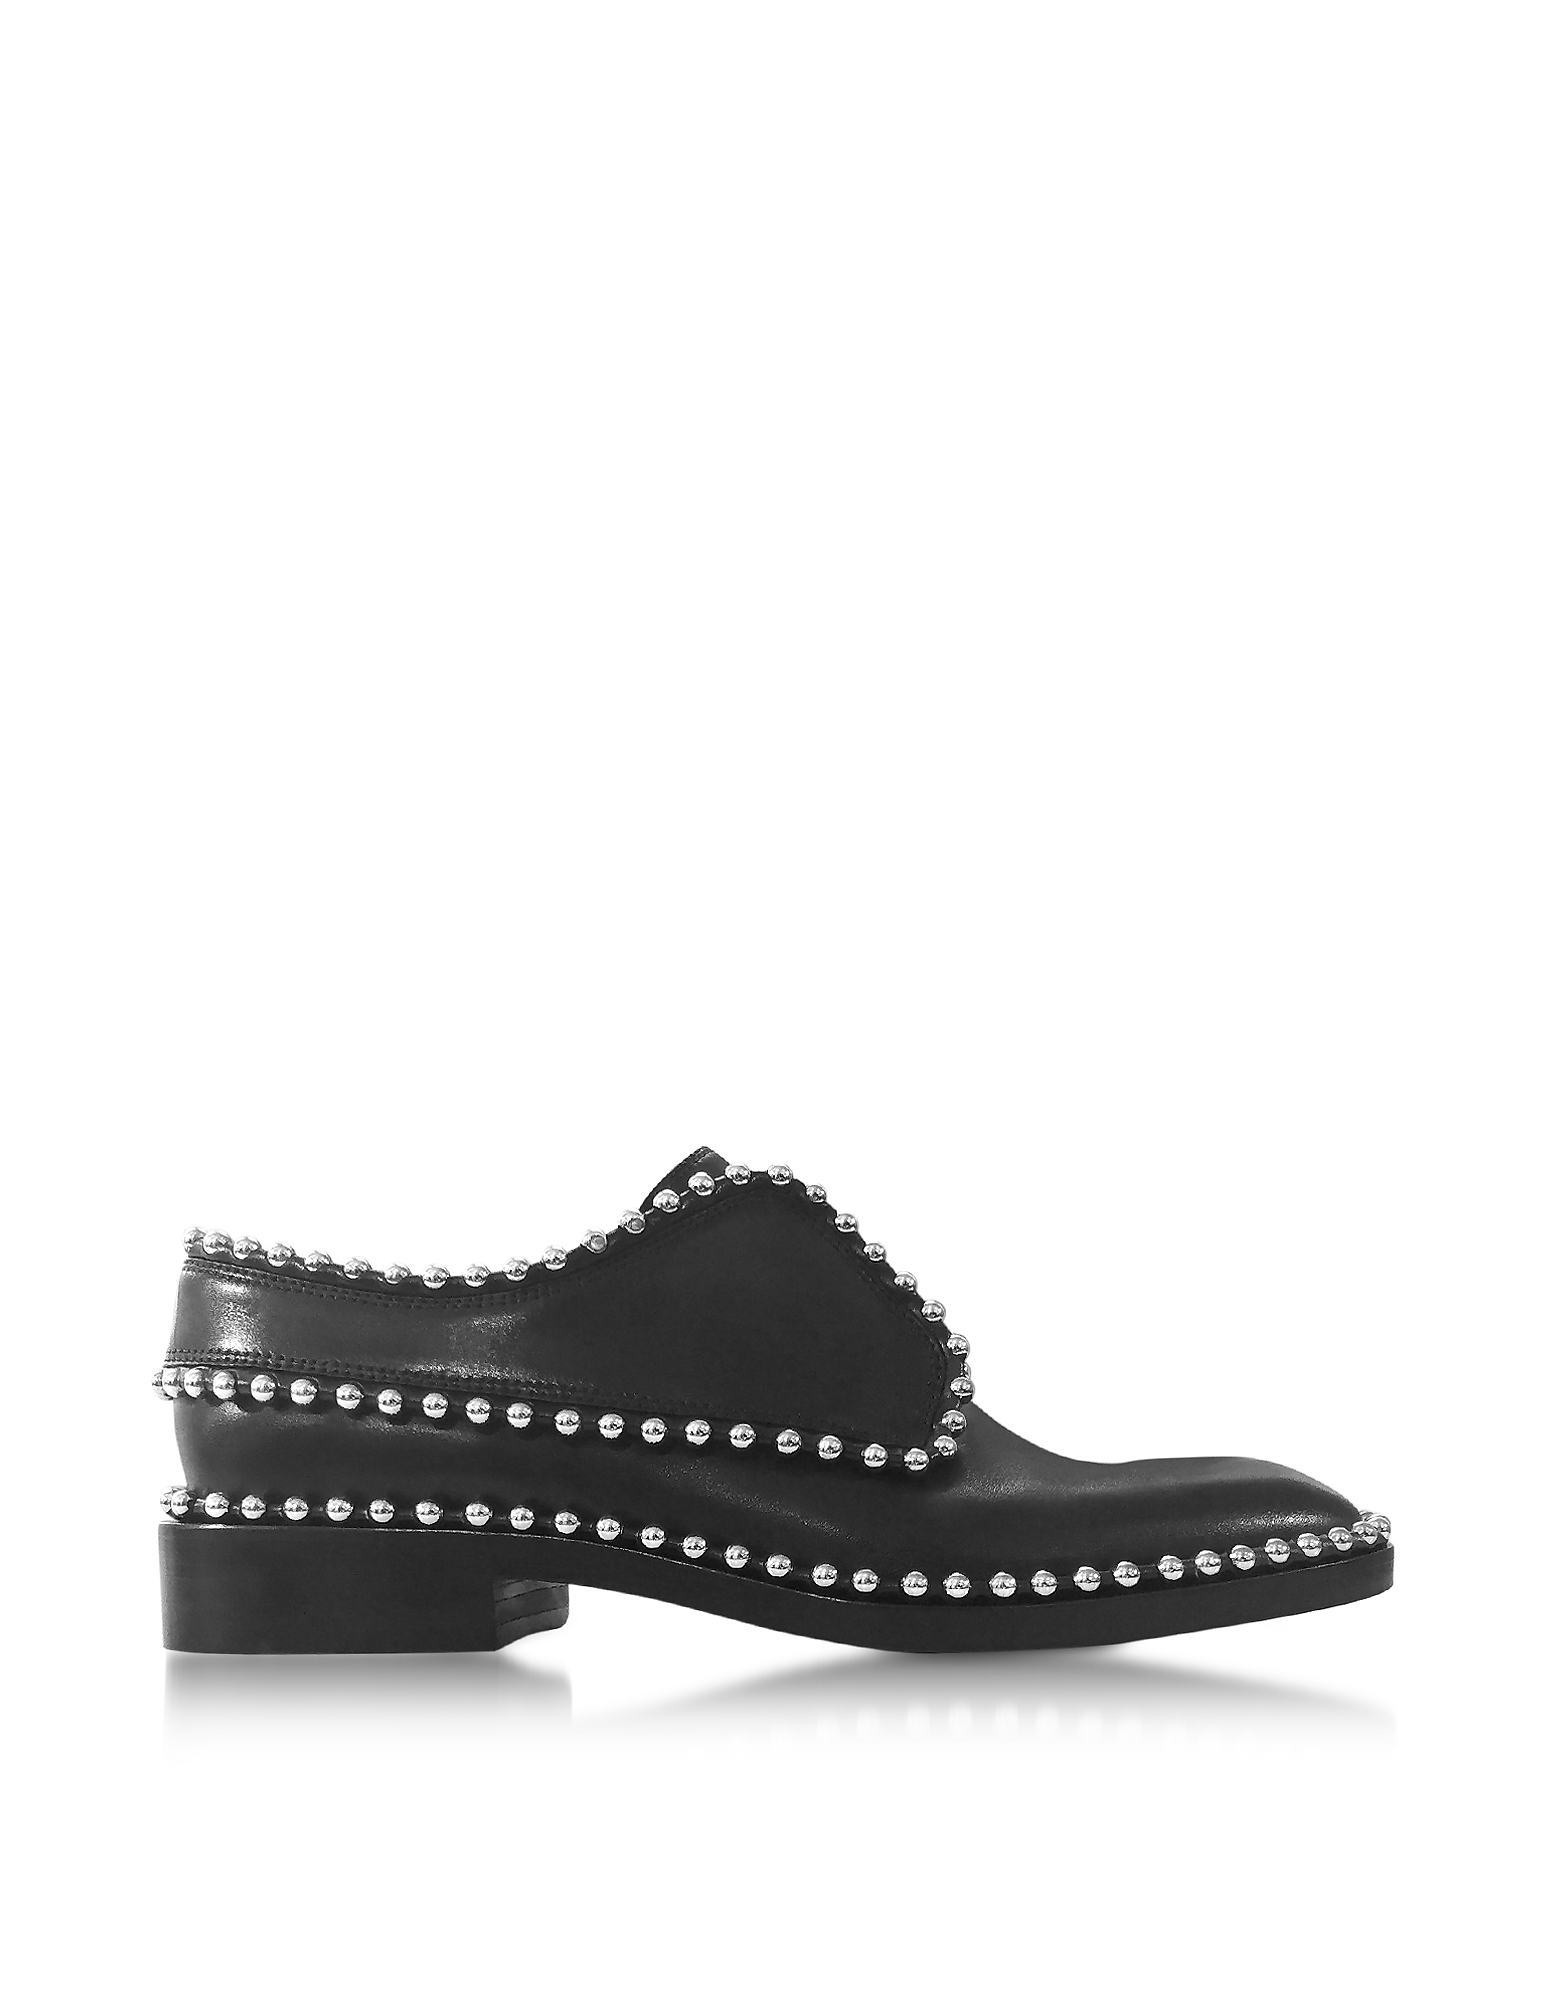 Alexander Wang Shoes, Wendie Black Leather Oxford